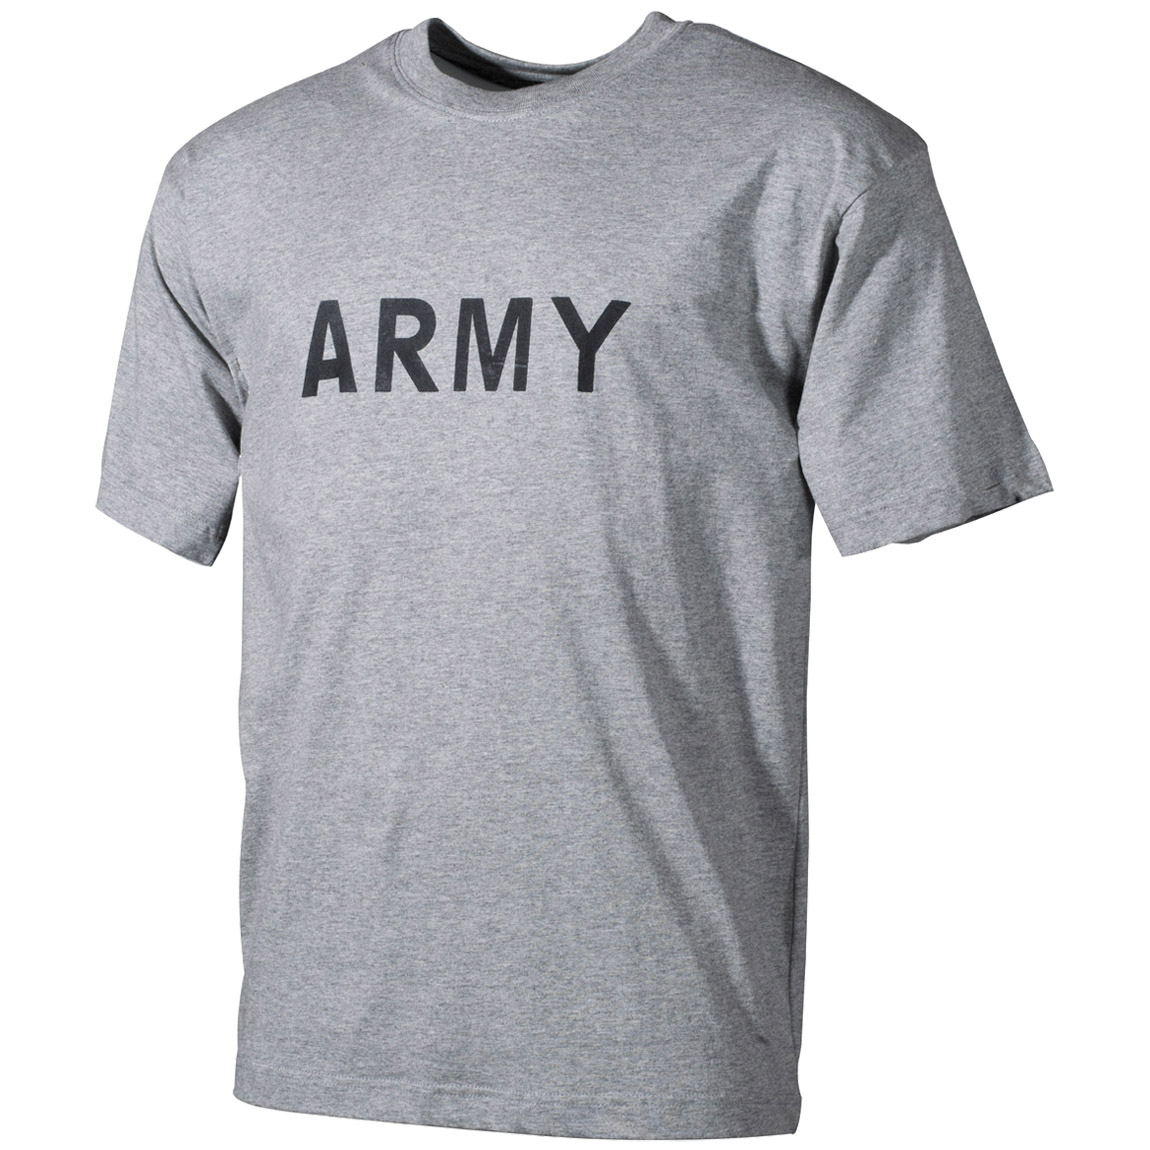 MFH T-shirt Grey with Army Print | T-shirts & Vests | Military 1st